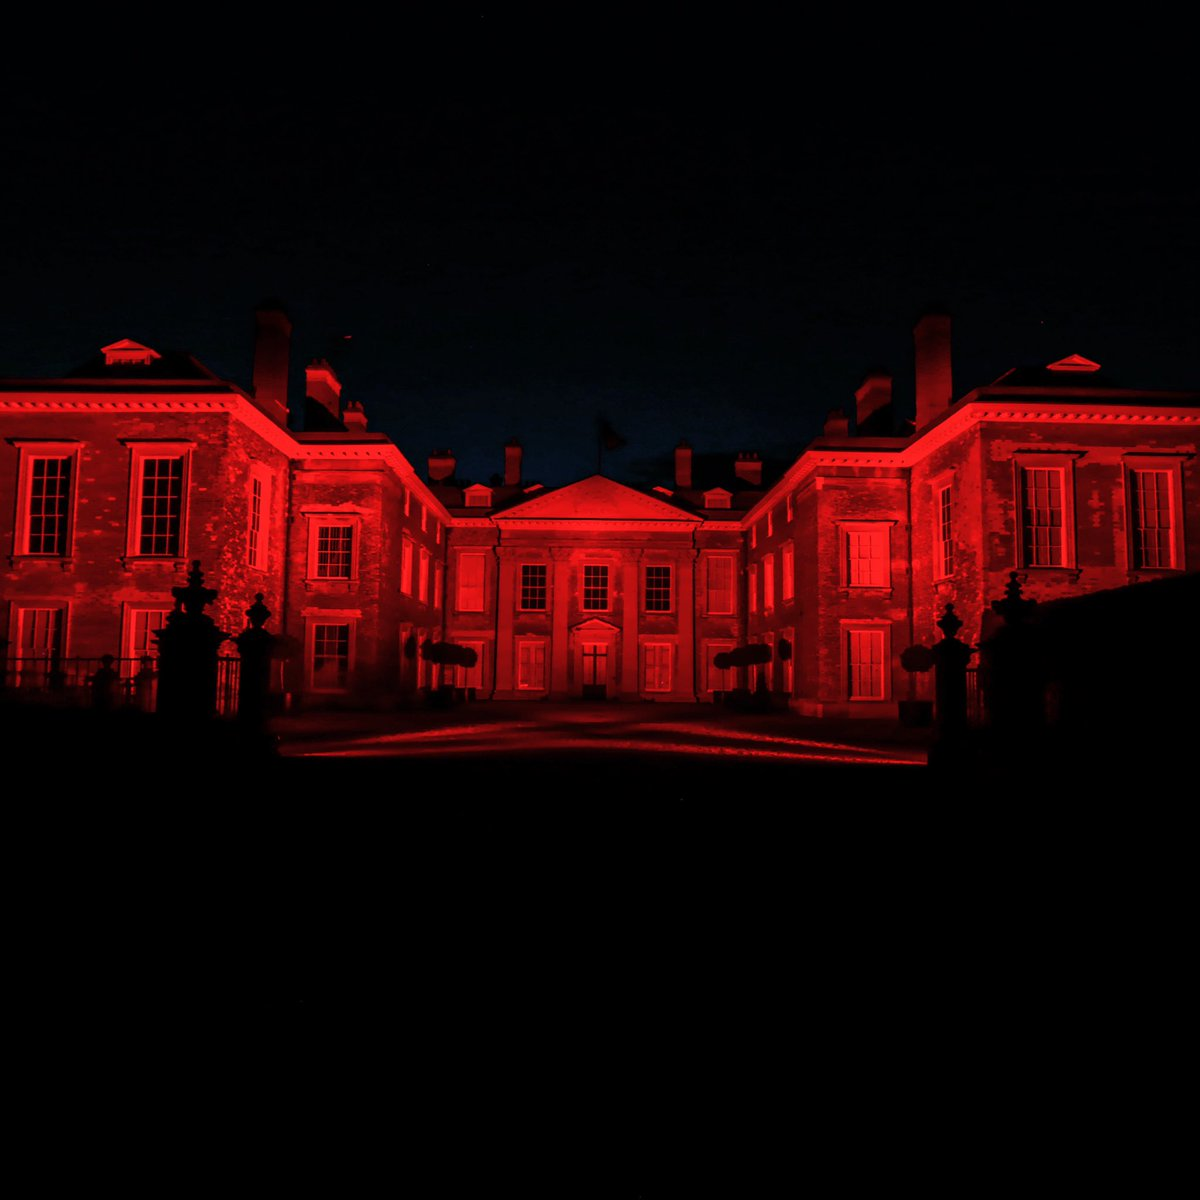 Our stunning facade showing support for the #LightItInRed campaign joining live entertainment venues and @Historic_Houses  across the UK @cspencer1508 @LightItInRed https://t.co/pIhU5tnSLK